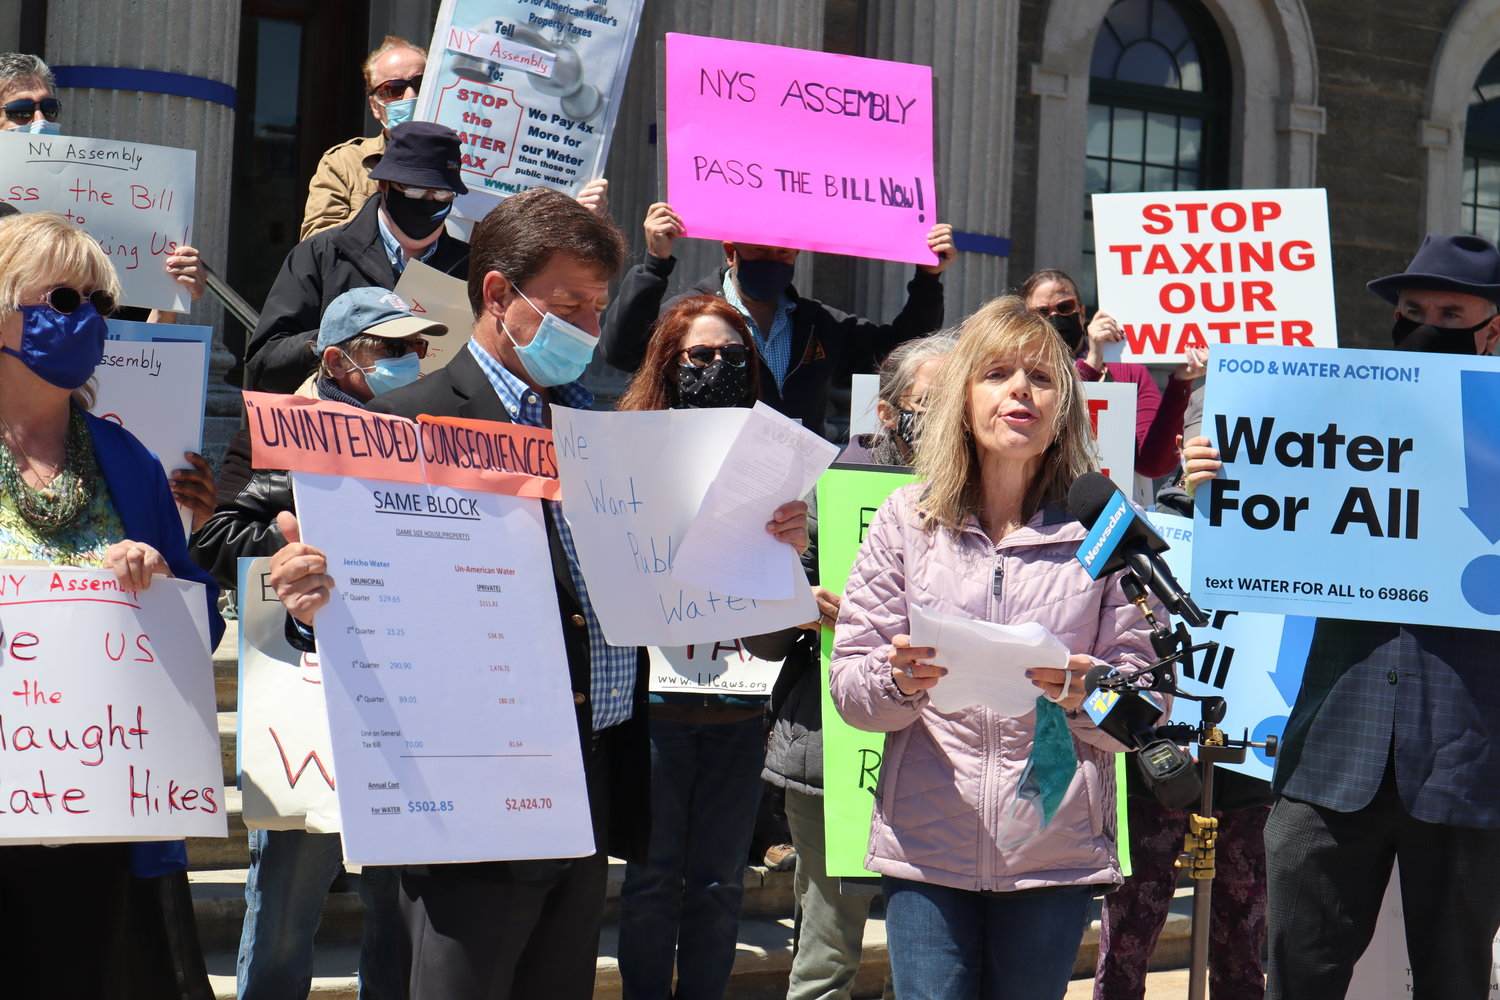 Agatha Nadel, director of the advocacy group North Shore Concerned Citizens, spoke at the rally.